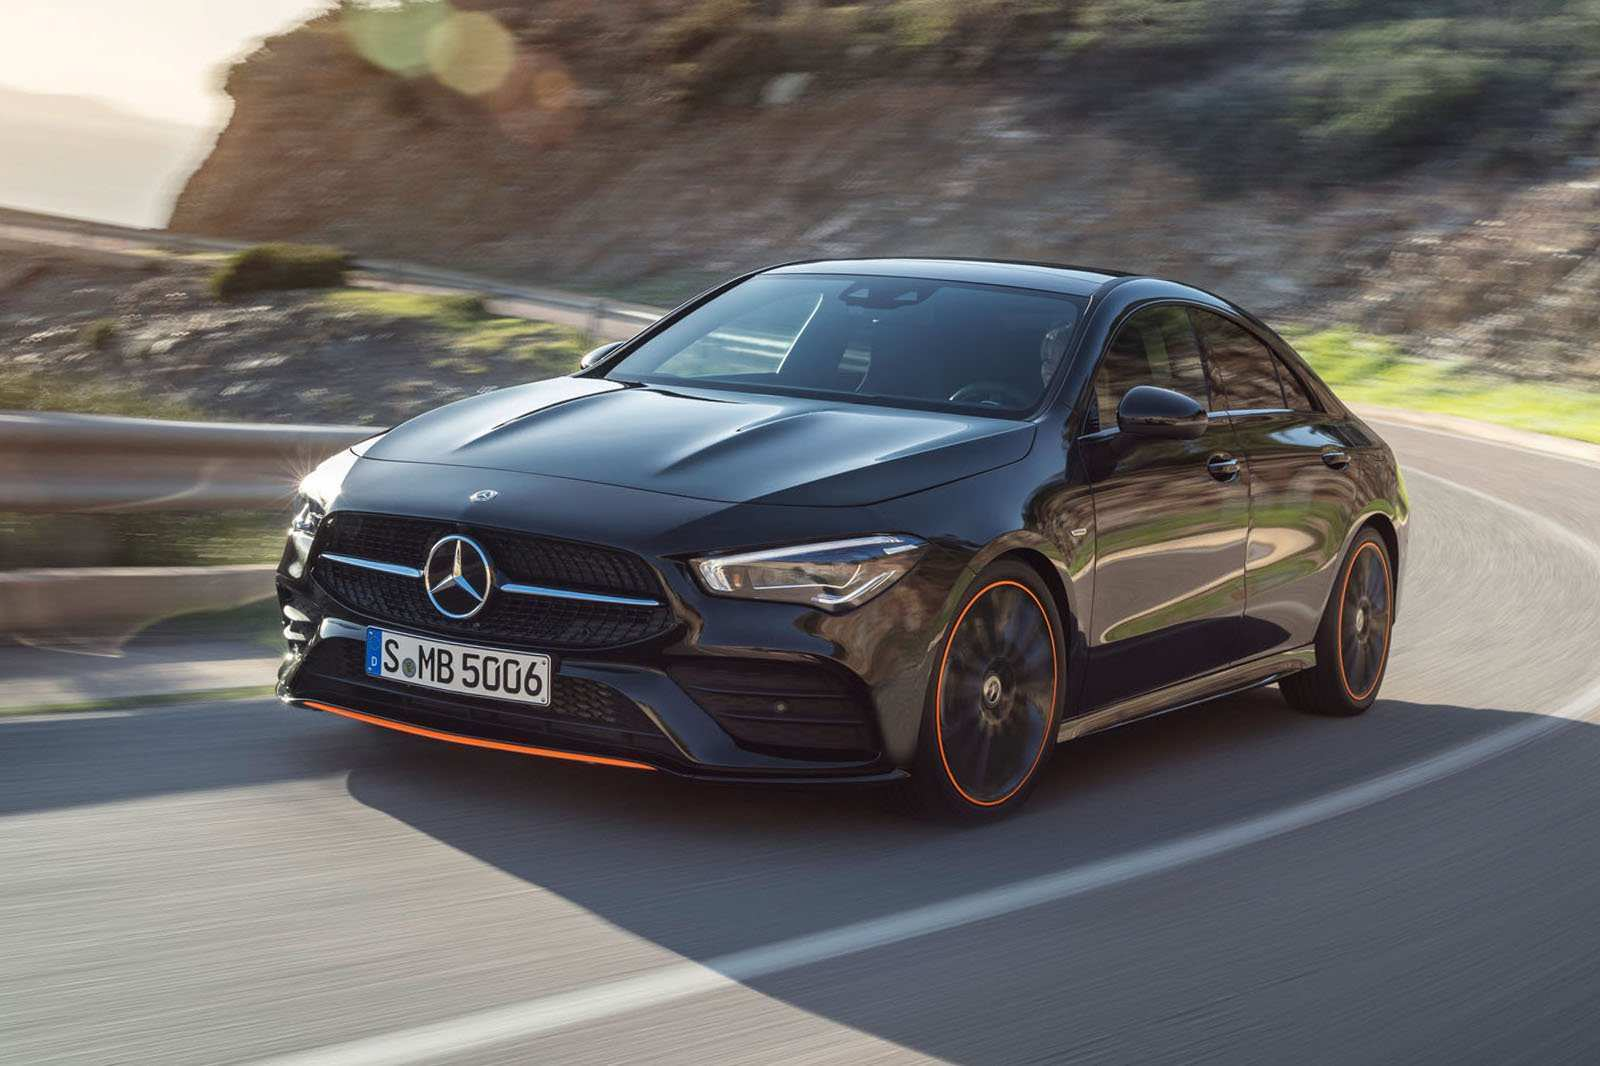 21 All New Mercedes A Class 2019 Price Spy Shoot